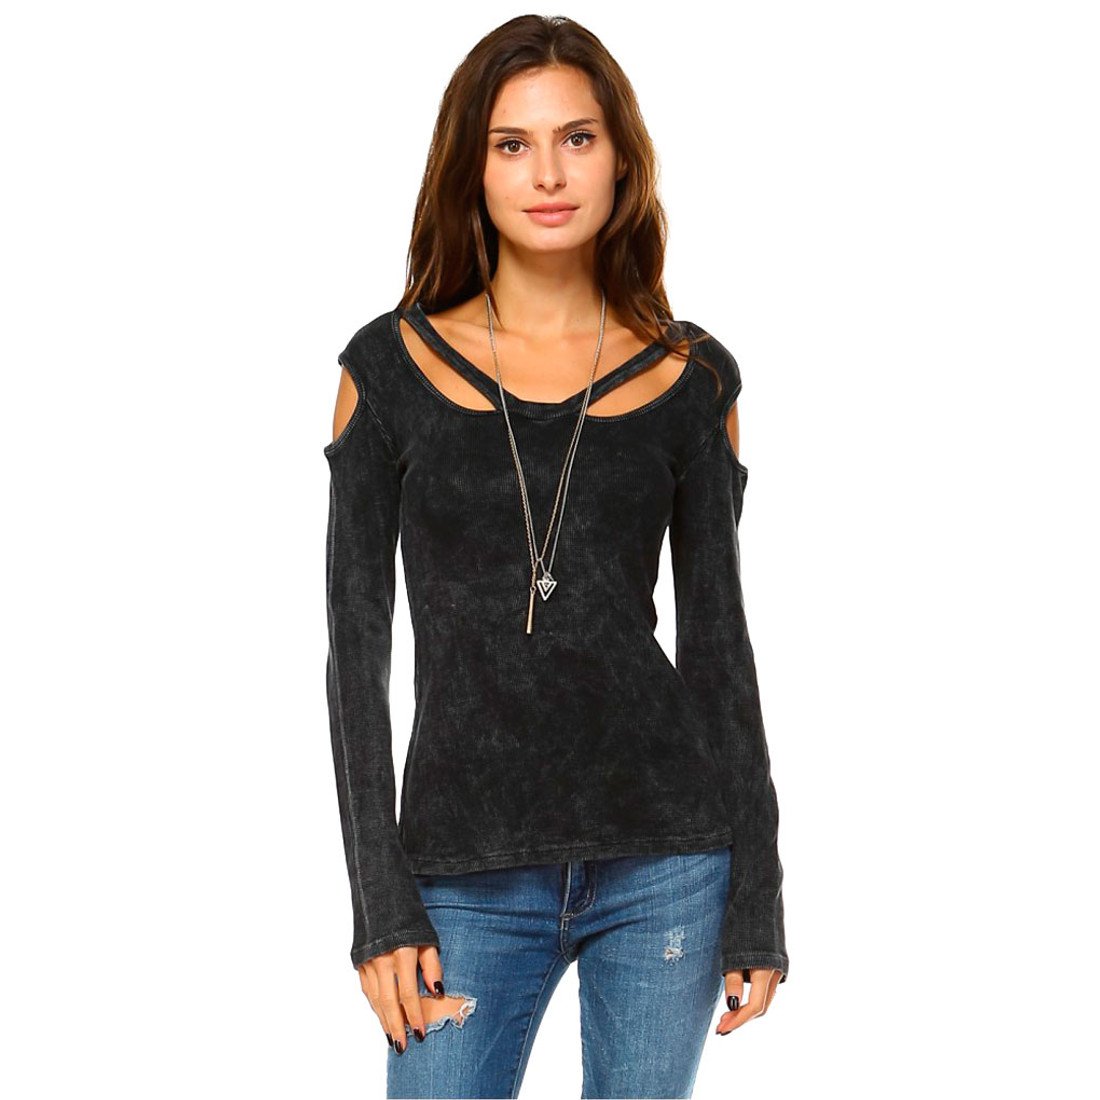 Black Women's Mineral Washed Long Sleeve Shirt with Cold Shoulder Detail